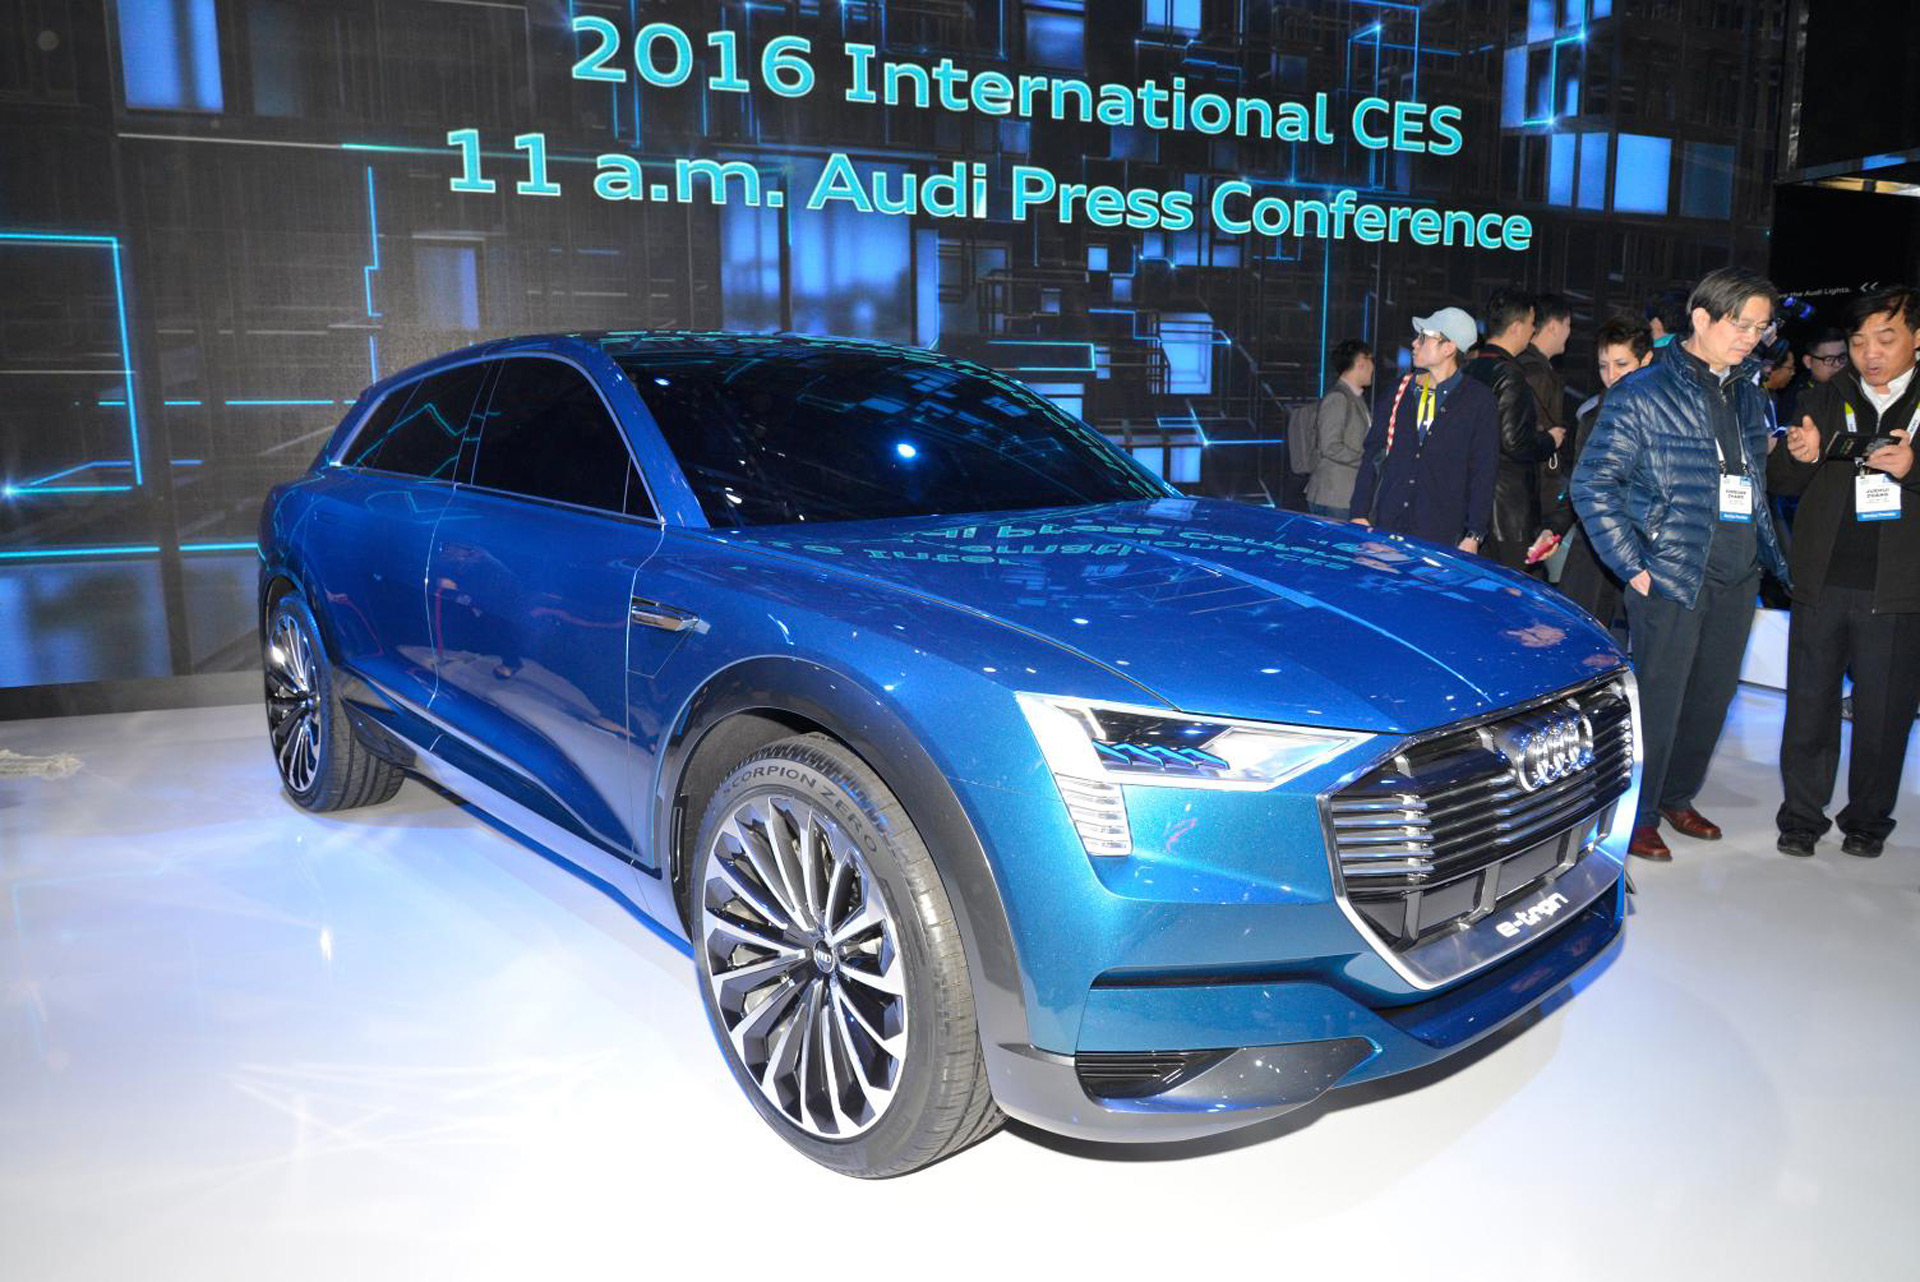 Two More Electric Cars To Follow Audi E Tron Suv By 2020 Maker Says